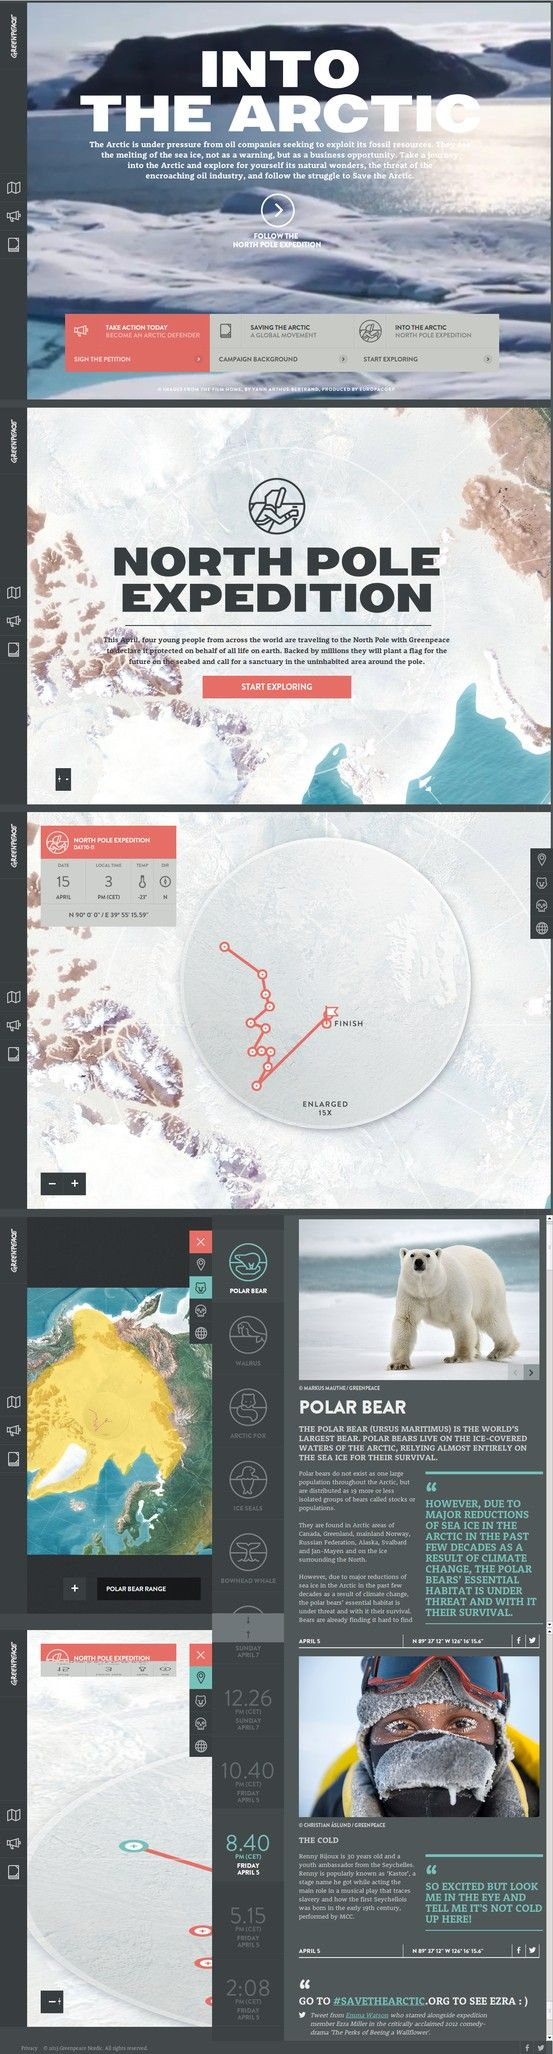 Into the Arctic - Greenpeace 23 April 2013 http://www.awwwards.com/web-design-awards/into-the-arctic-greenpeace-1 #webdesign #inspiration #UI #CSS3 #Animation #HTML5 #Design  #webdesign #inspiration #UI #CSS3 #Animation #HTML5 #Design